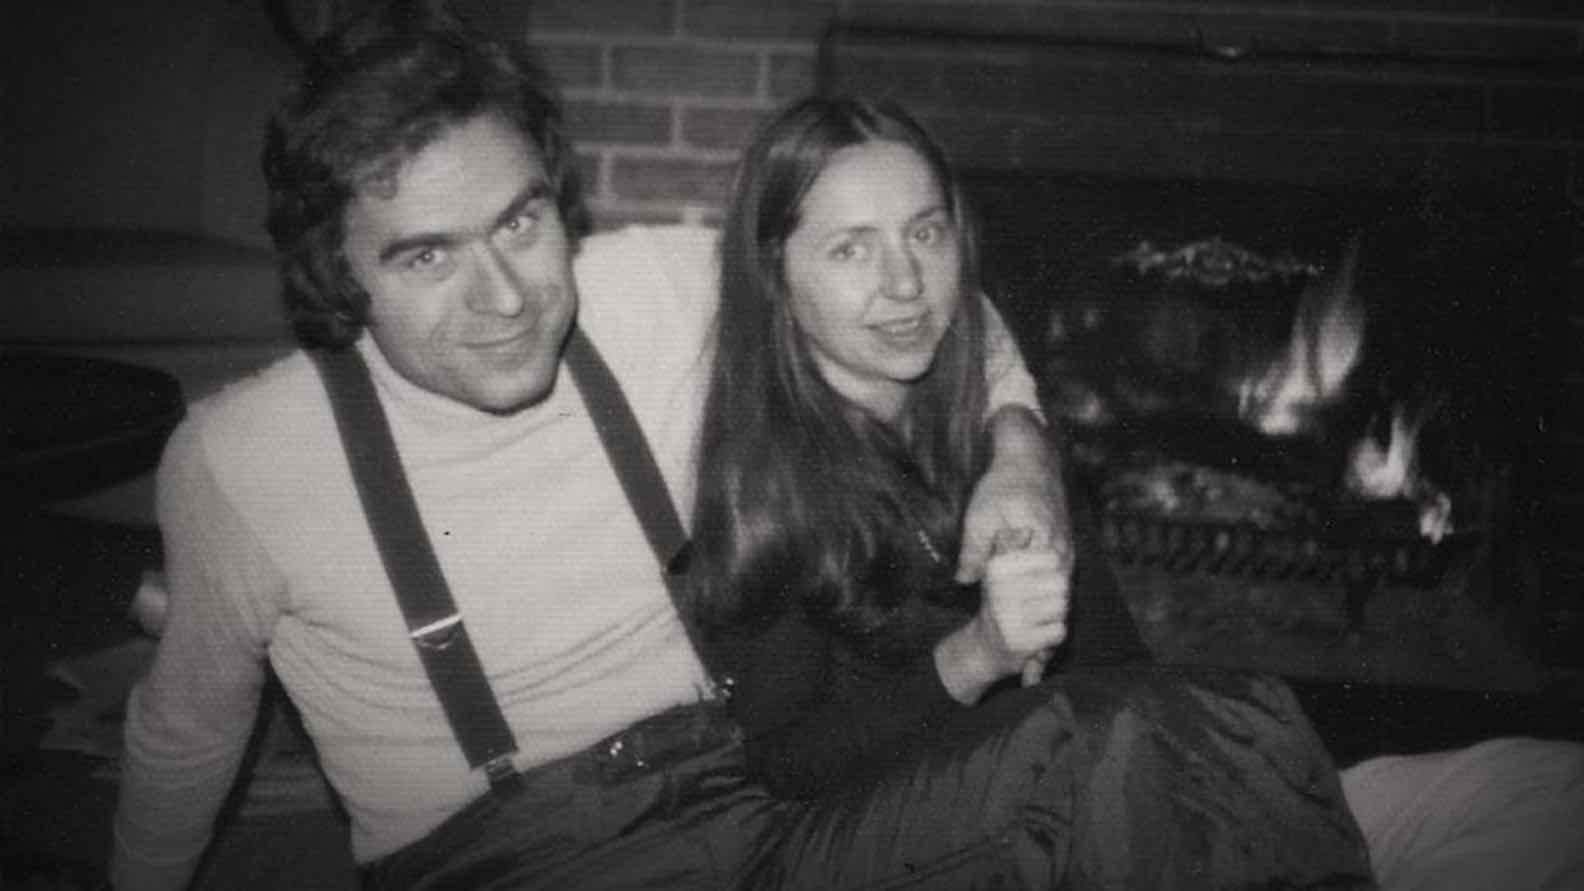 Being married to a serial killer may be one of the strangest things a person can do, but for Ted Bundy's wife, it's actually more complicated than that.